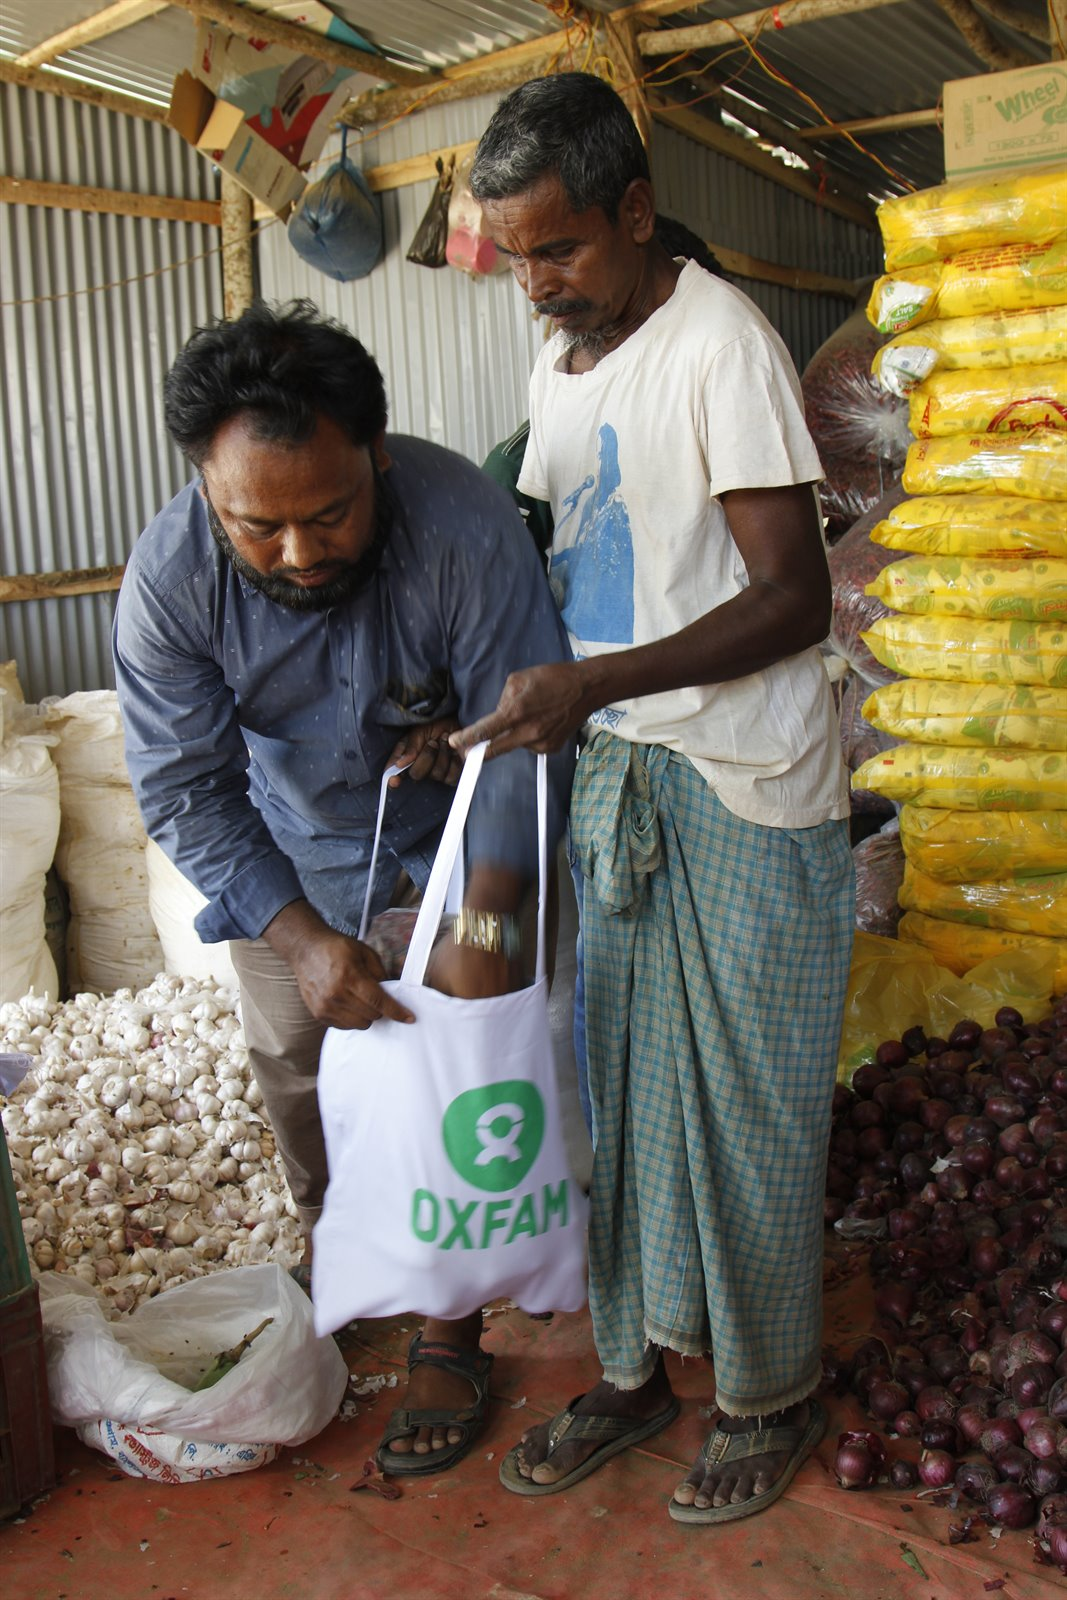 180430_Bangladeshi store keeper MD Ruhulamin packs fresh veges & spices bought with Oxfam cash vouchers for Rohingya refugee Kefayatullah.JPG